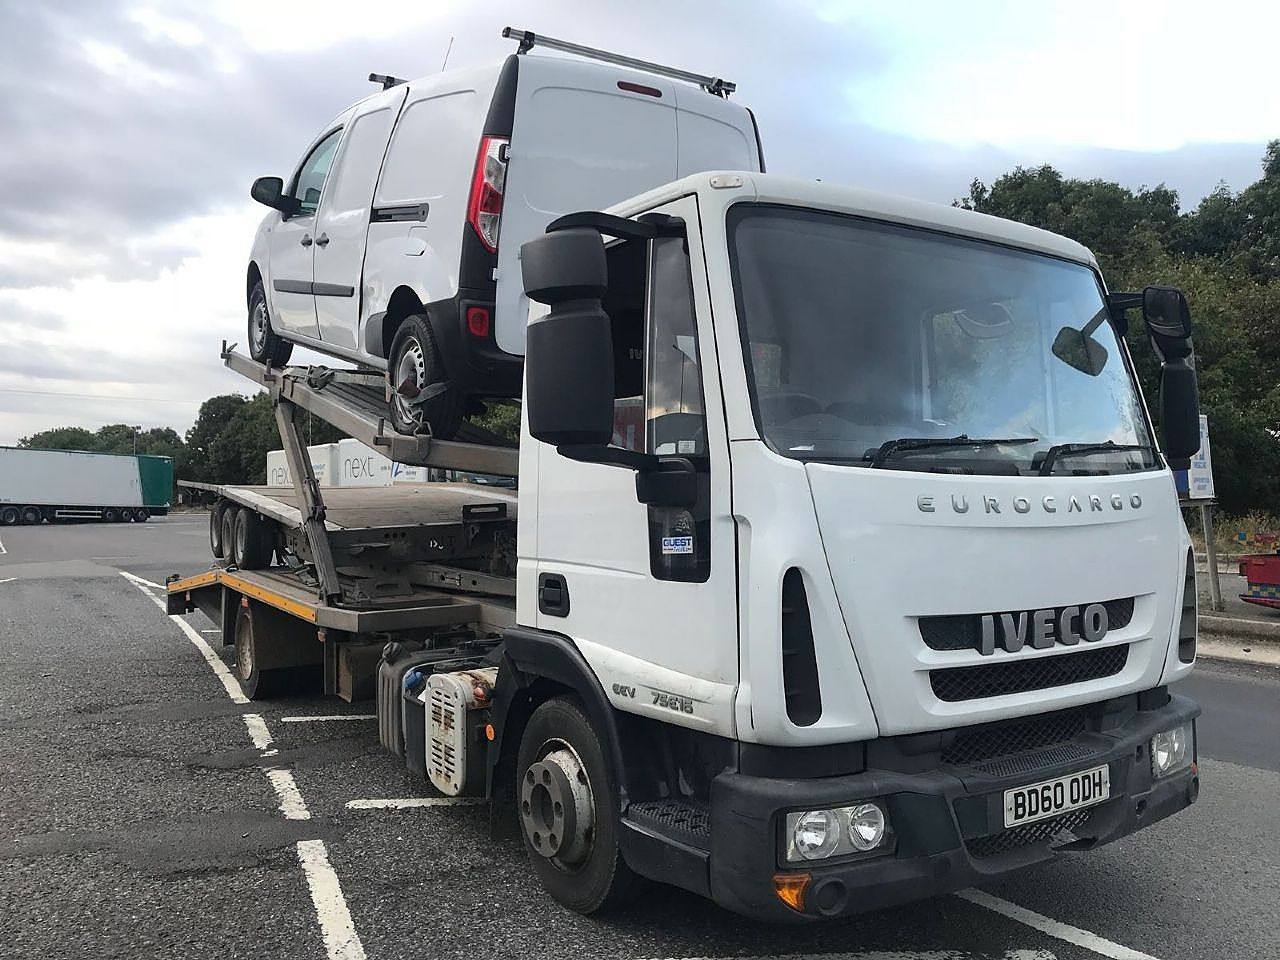 IVECO EUROCARGO Recovery Truck - Thumbnail 1